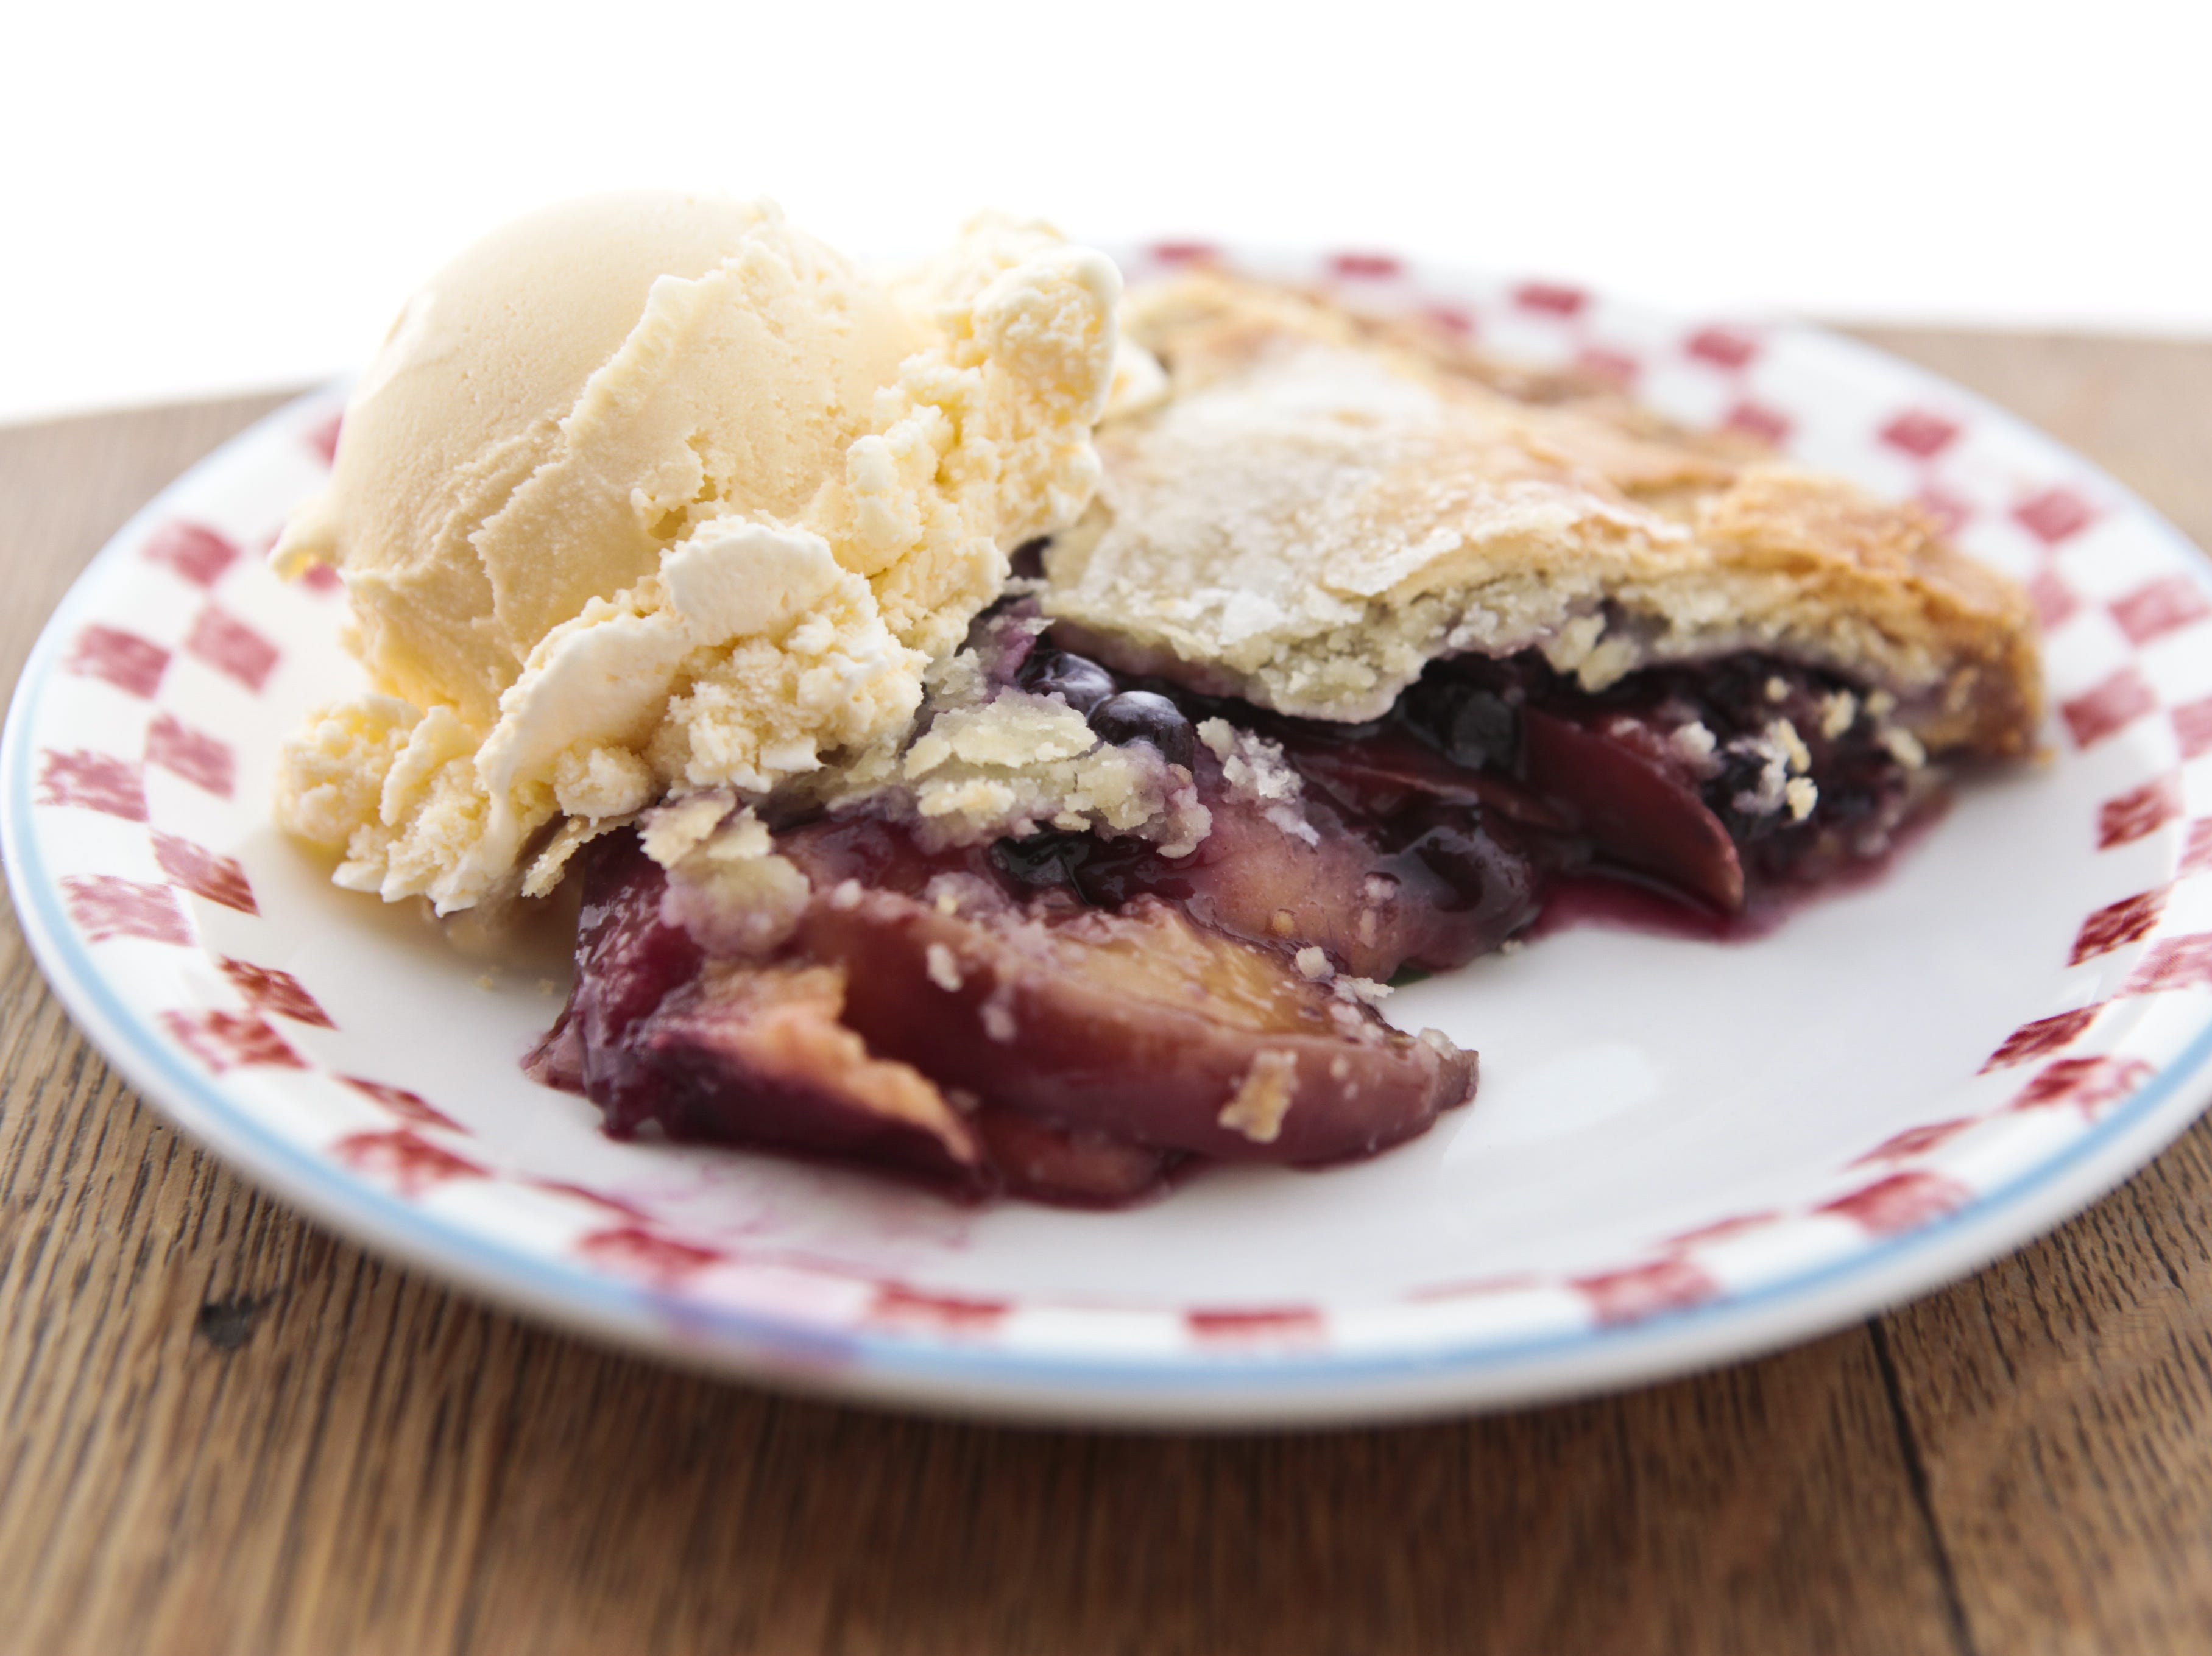 Kiss the Cook| This breakfast and lunch restaurant has a soft spot for dessert. Go for delicious flavors such as raisin cream pie ($22), bourbon pecan ($24) and Michigan sour cherry ($22). |Details: 4915 W. Glendale Ave., Glendale. 623-939-4663, kissthecookrestaurant.com.